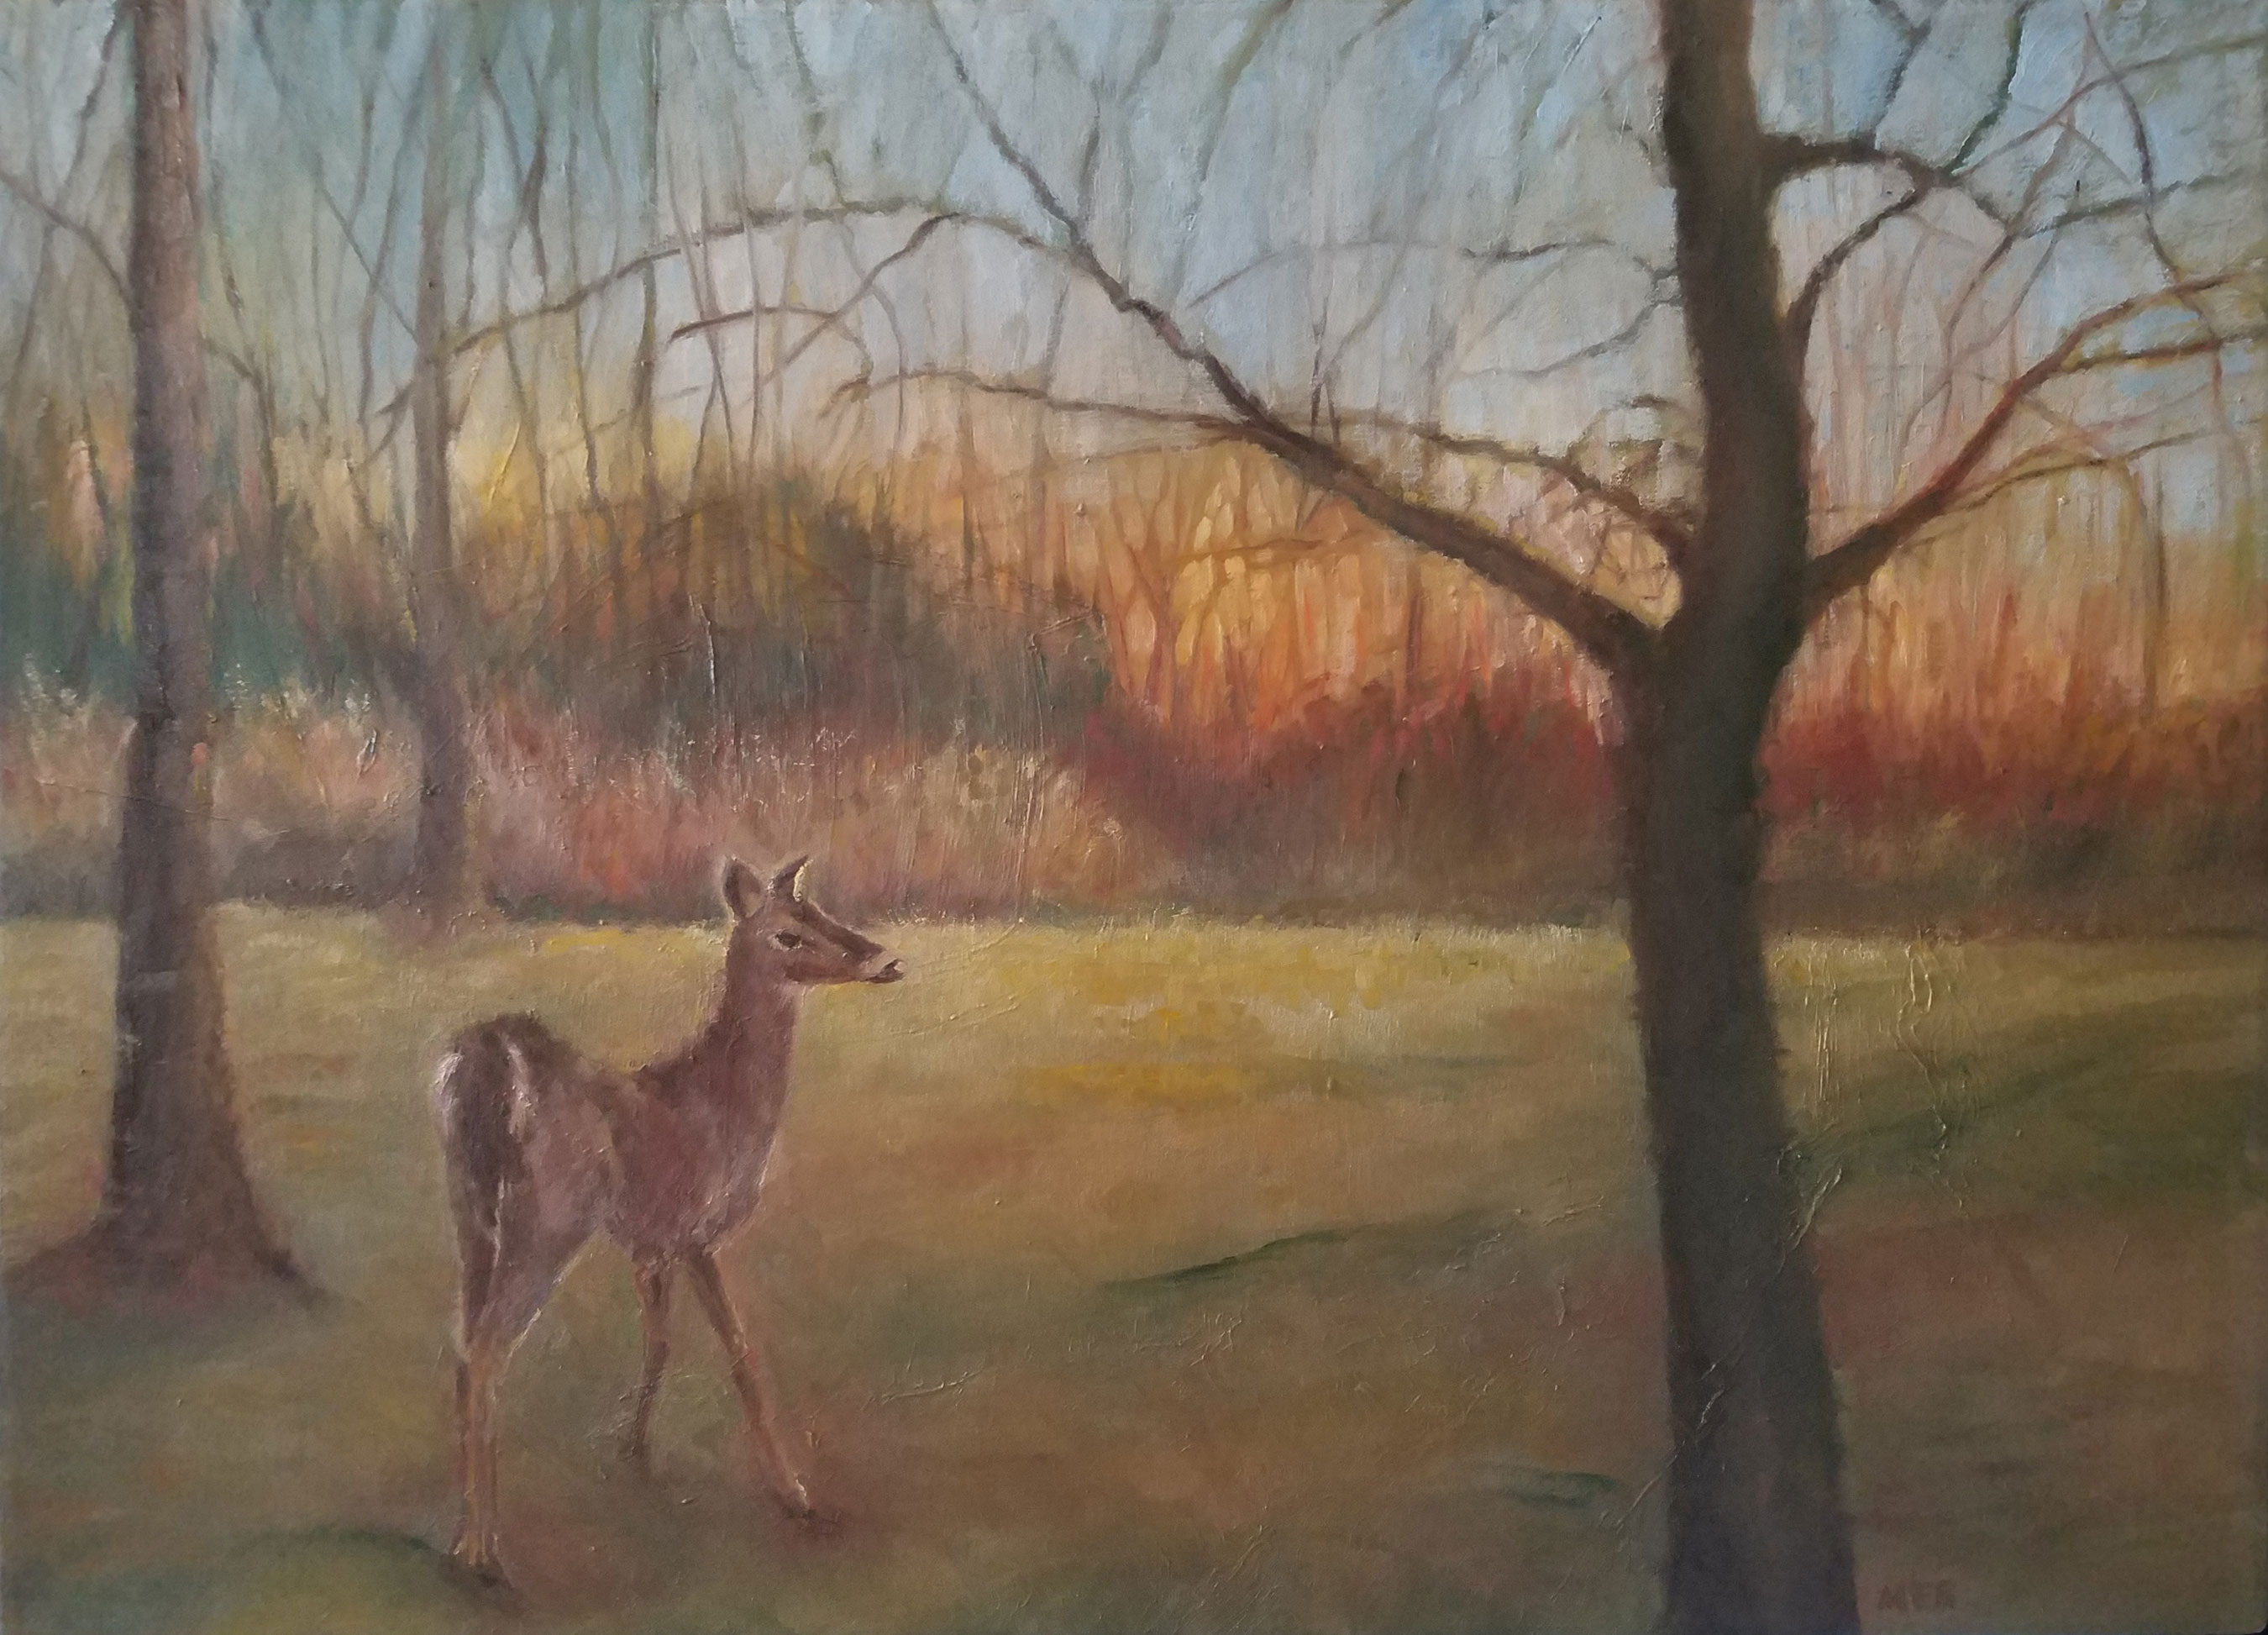 Copyright Marty Barrick Oil on gallery-wrapped canvas 36 x 26 Available at Brookside Gardens Feb. 26-March 25, 2018